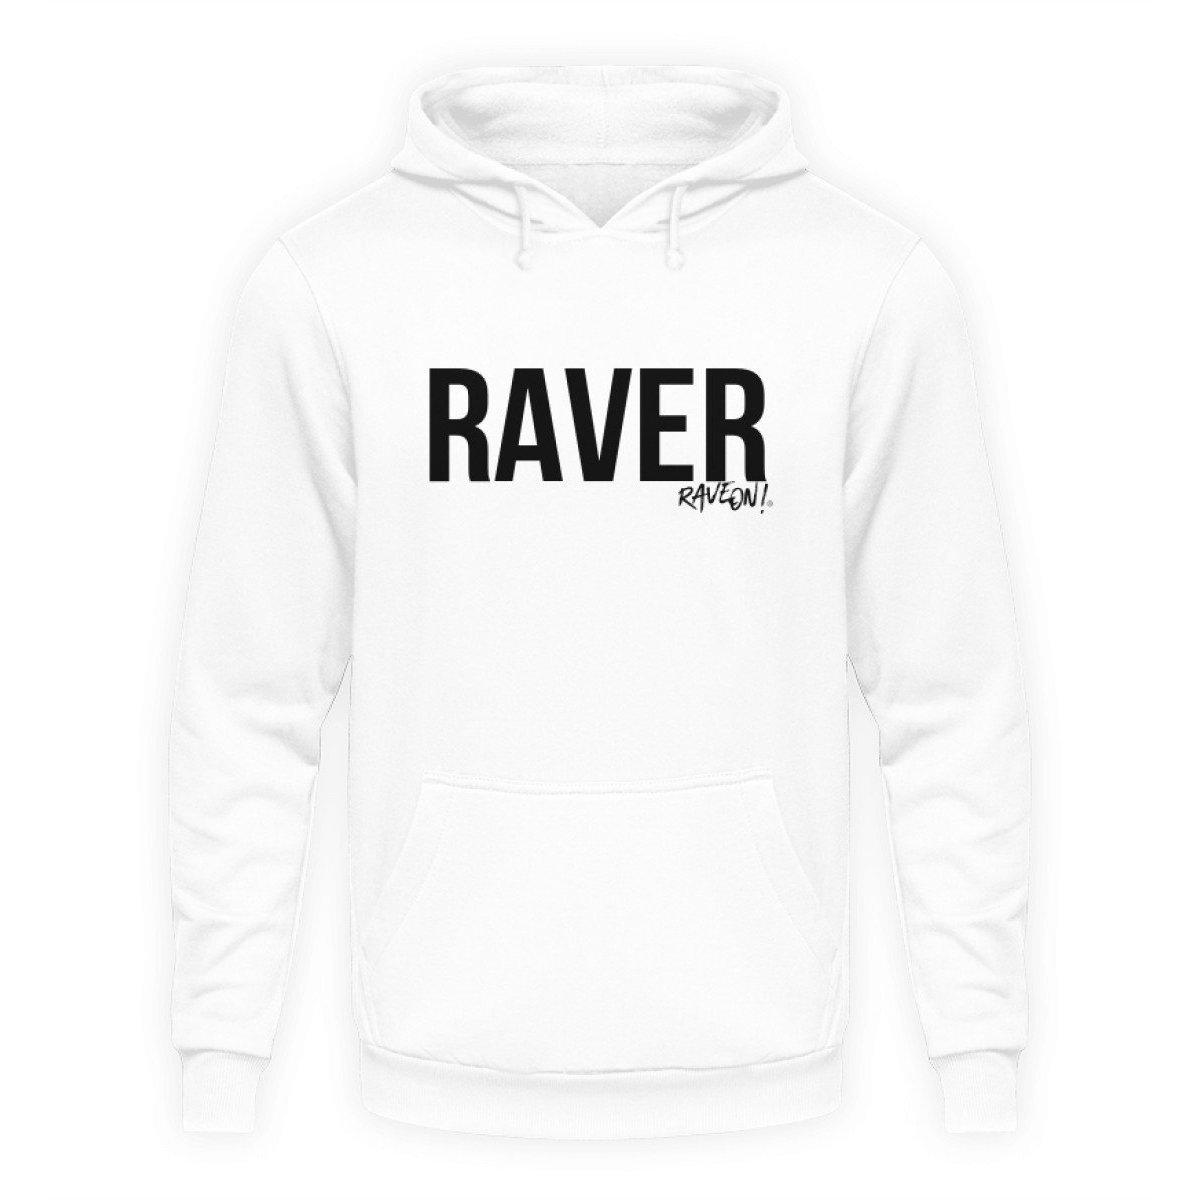 RAVER Hoodie - Unisex Kapuzenpullover Hoodie Unisex Hoodie Arctic White / S - Rave On!® der Club & Techno Szene Shop für Coole Junge Mode Streetwear Style & Fashion Outfits + Sexy Festival 420 Stuff